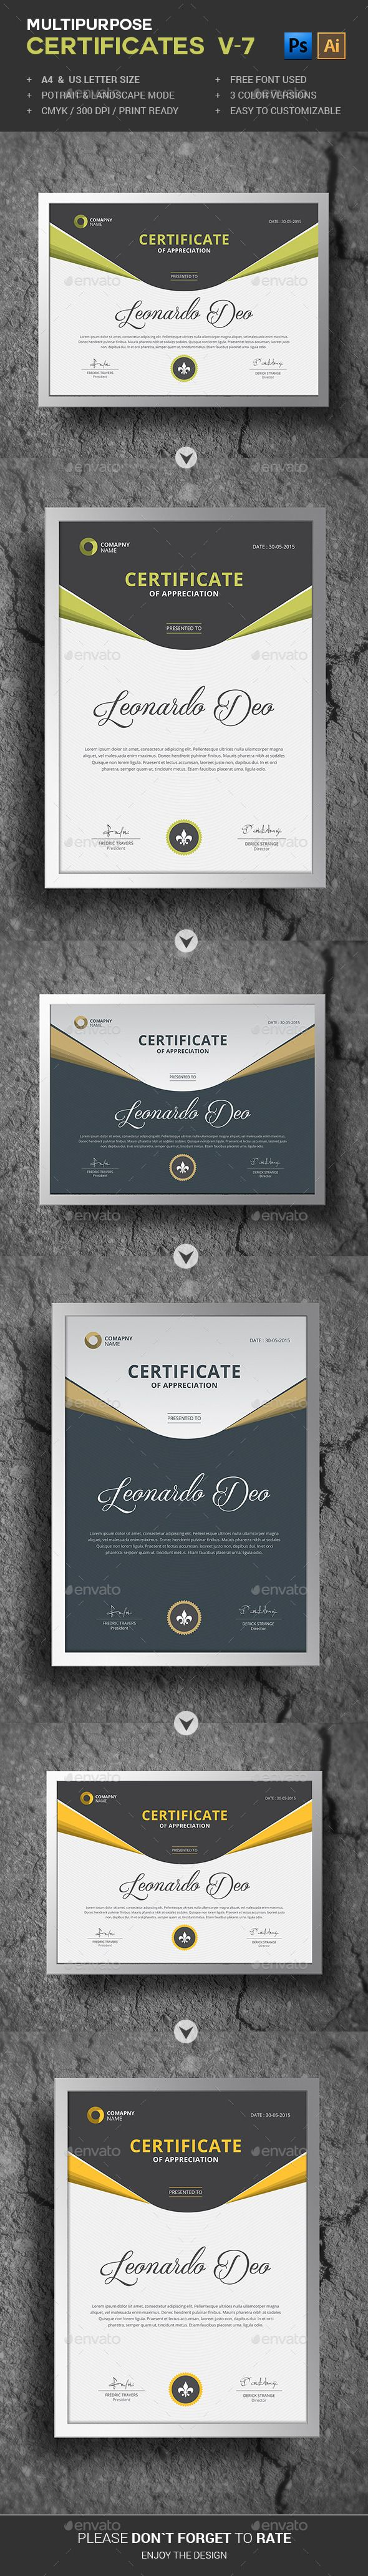 Multipurpose Certificates PSD Template